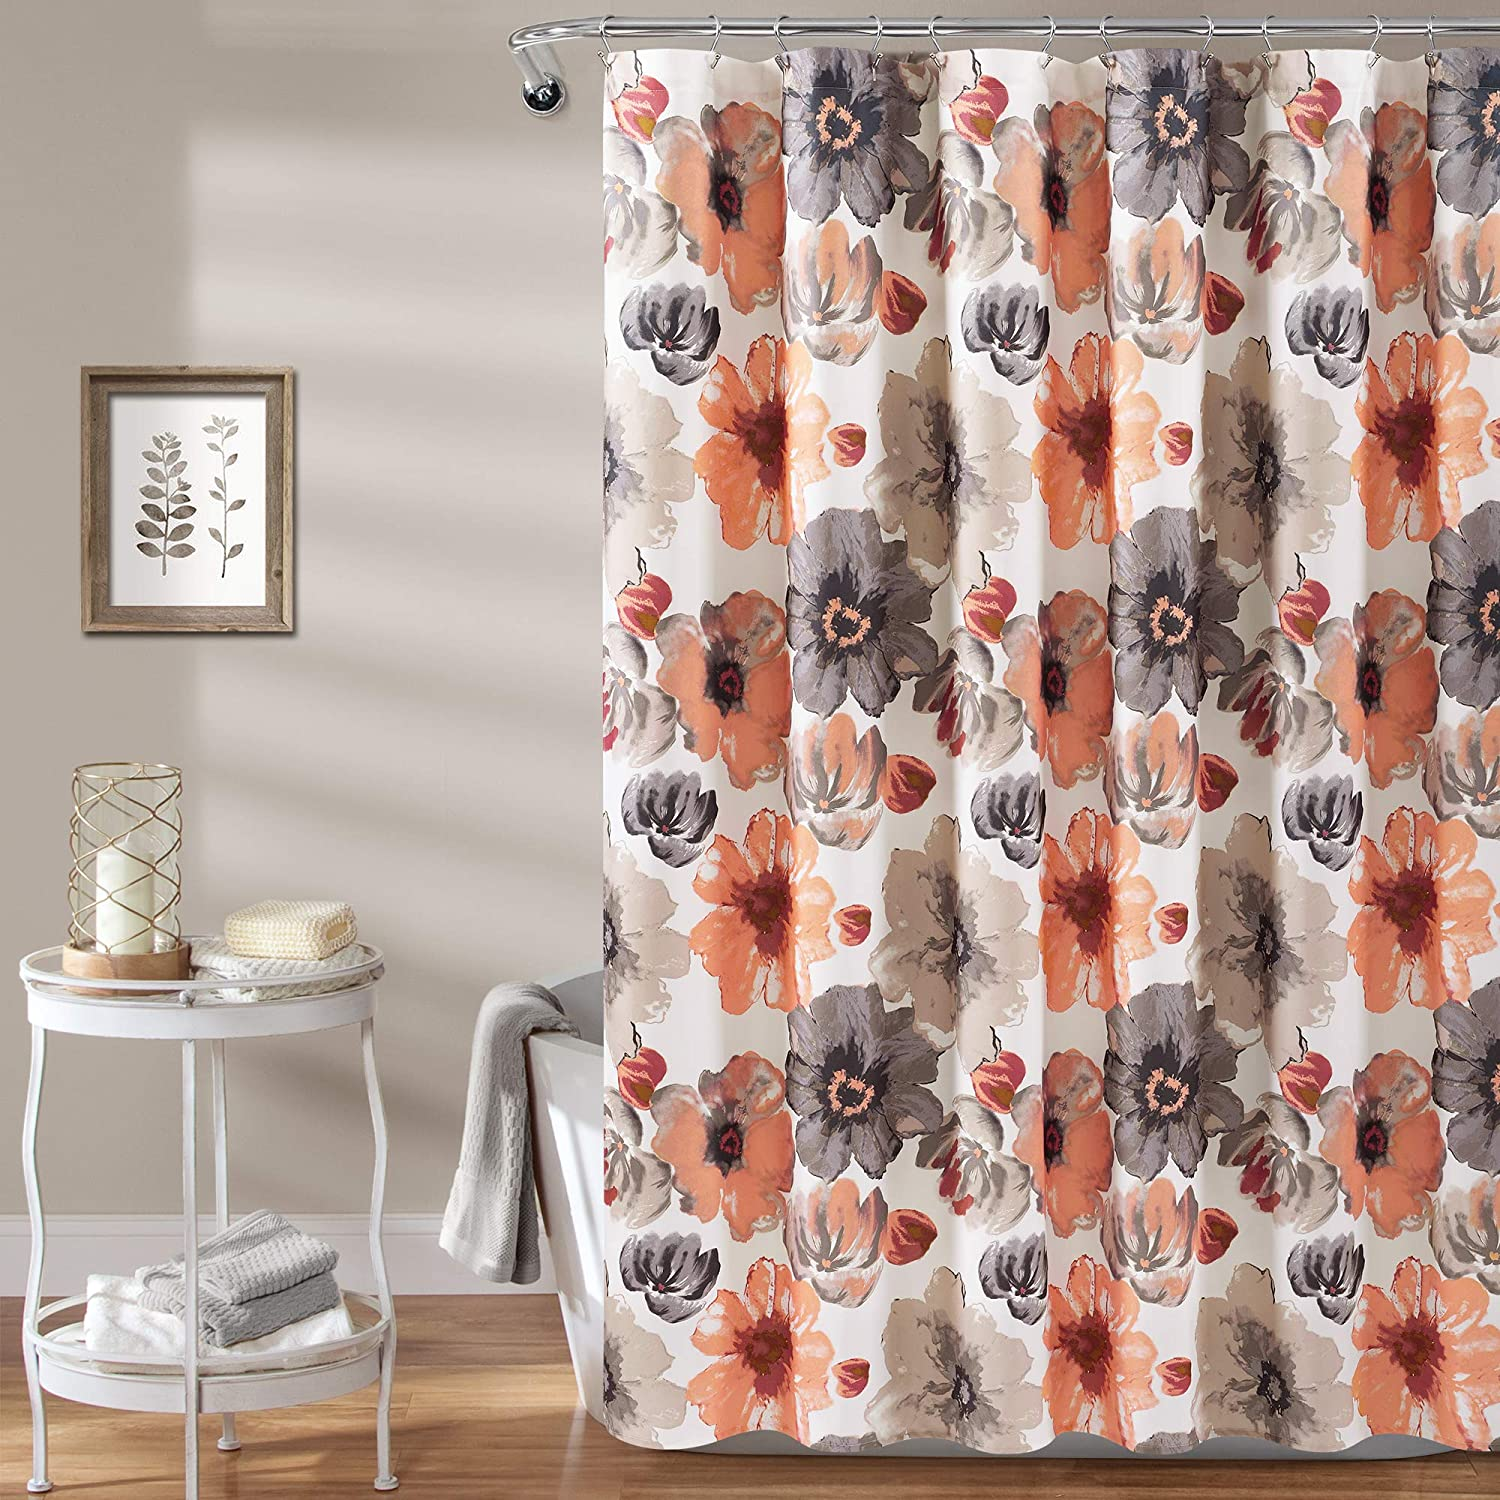 "Lush Decor Leah Shower Curtain-Bathroom Flower Floral Large Blooms Fabric Print Design, x 72"", Coral/Gray"